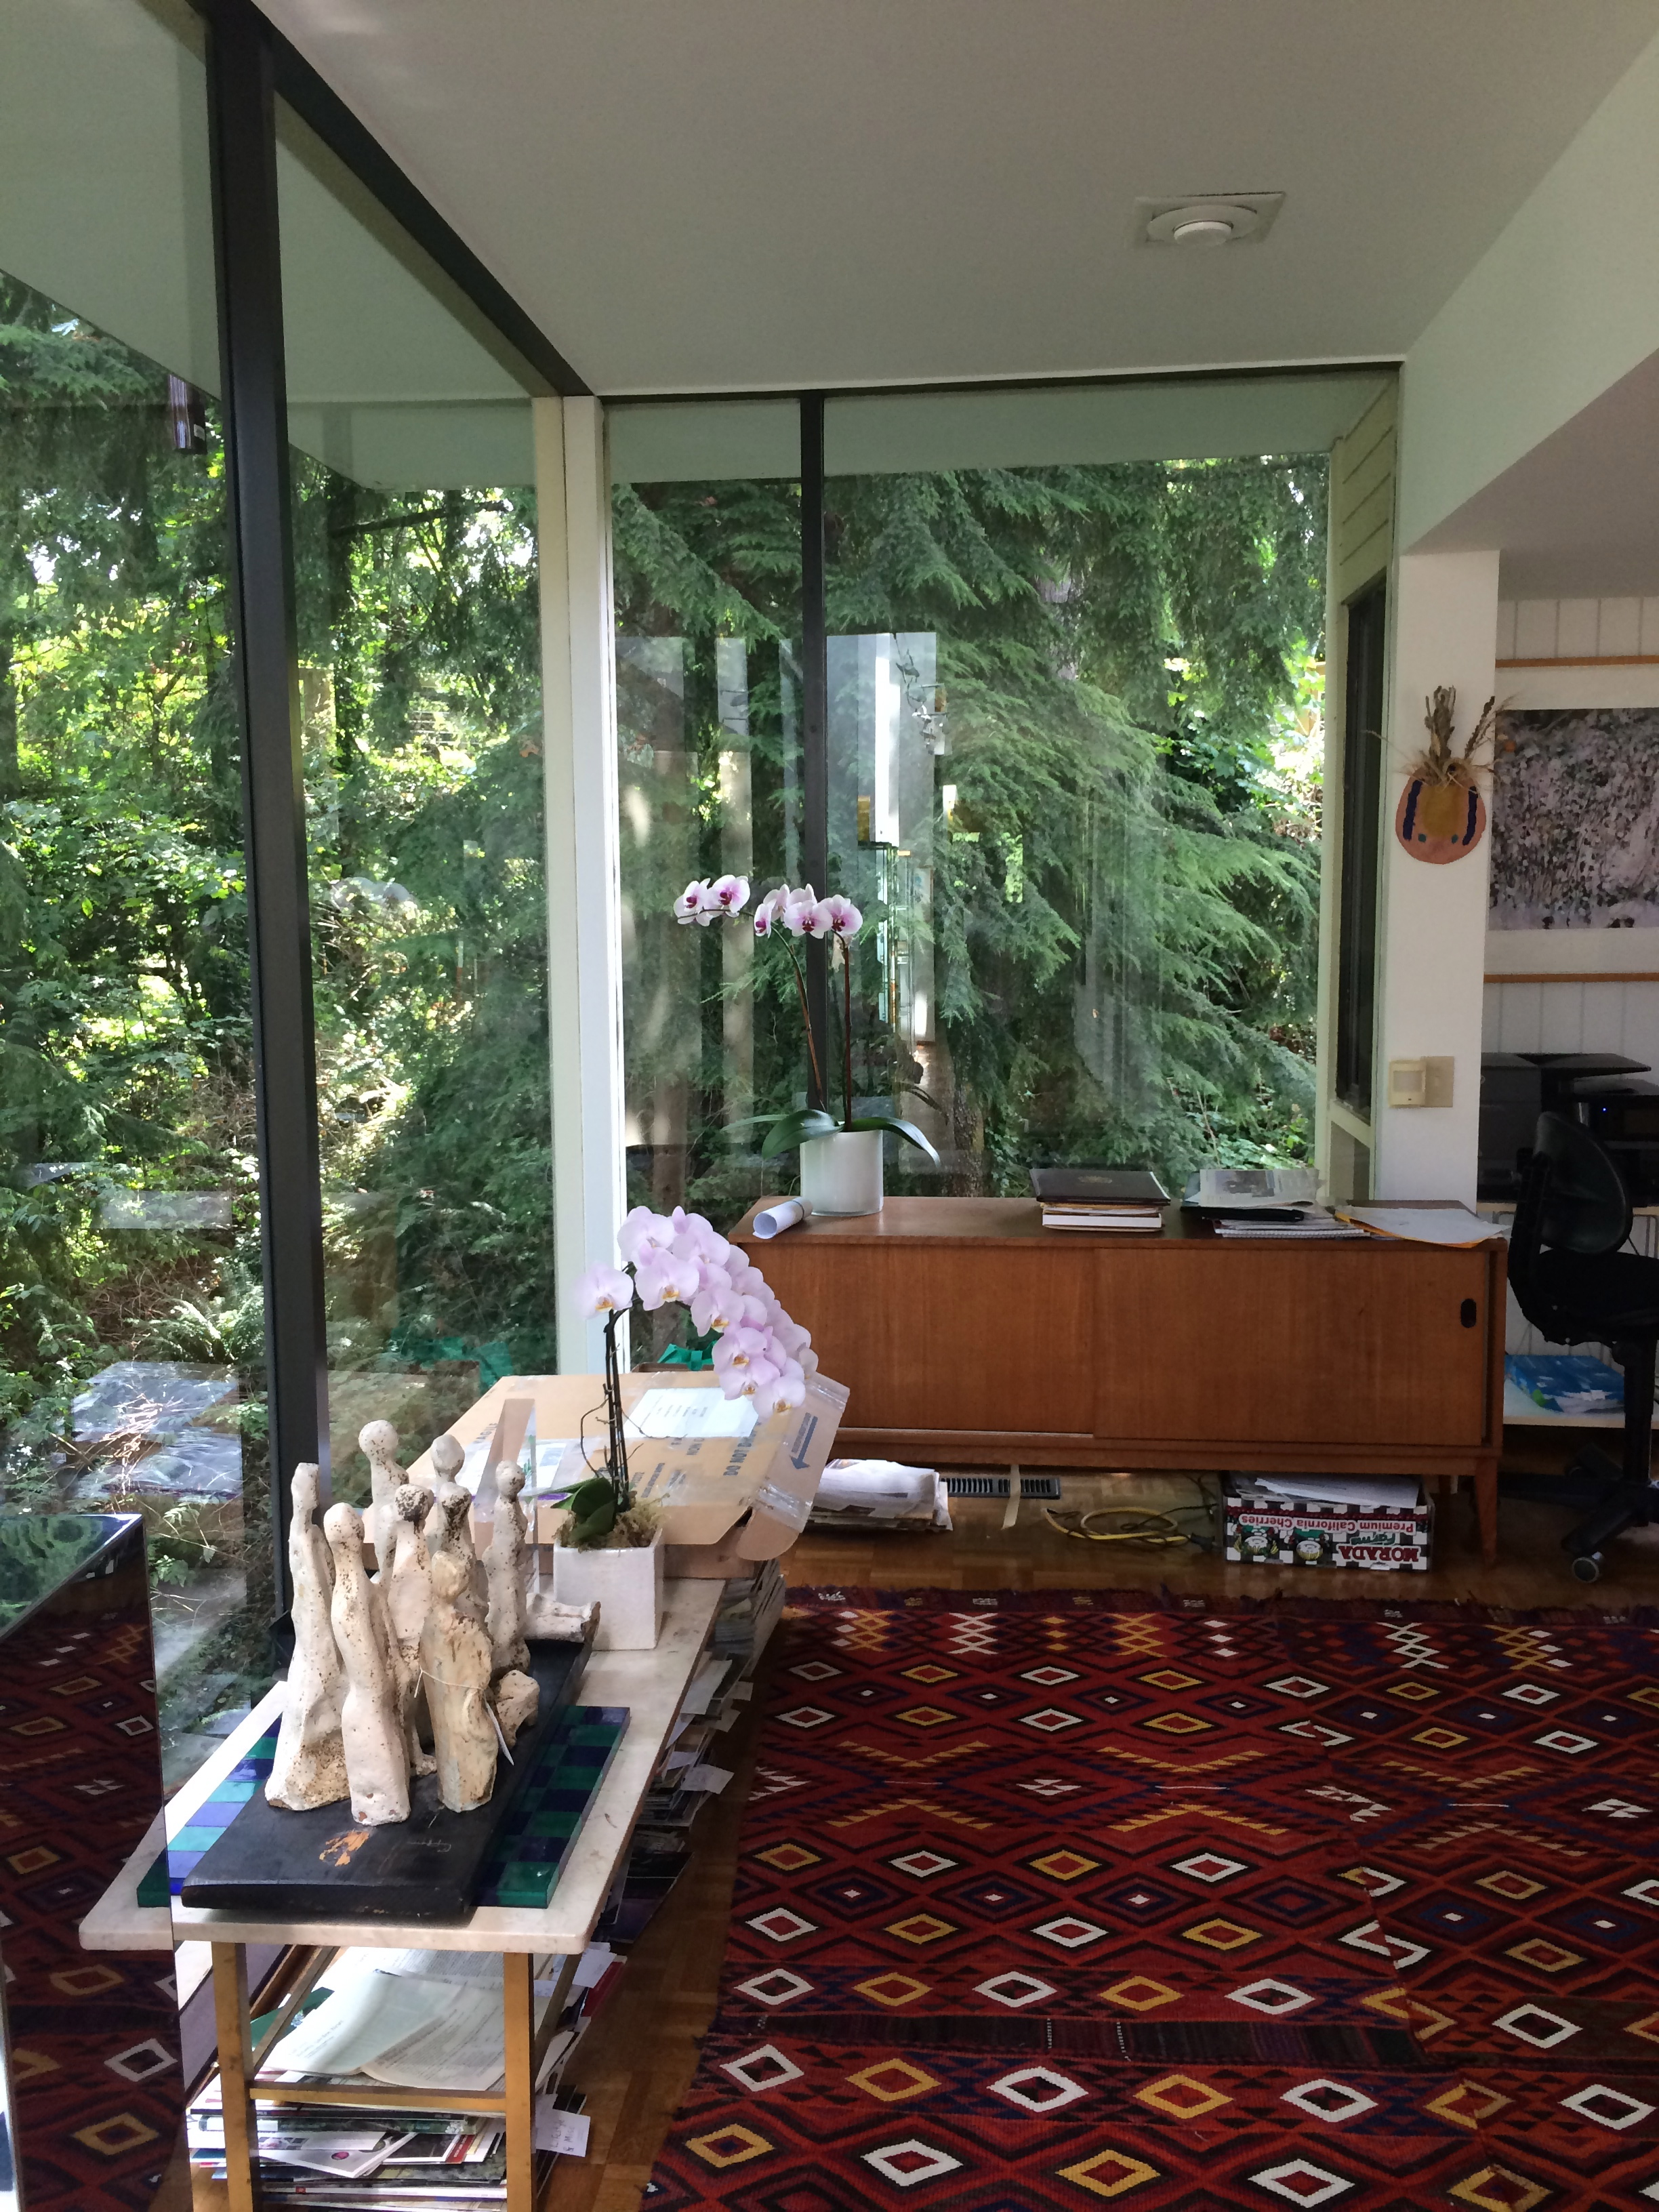 Interior of the Ravine House, 2015. Photo by Chanel Blouin.